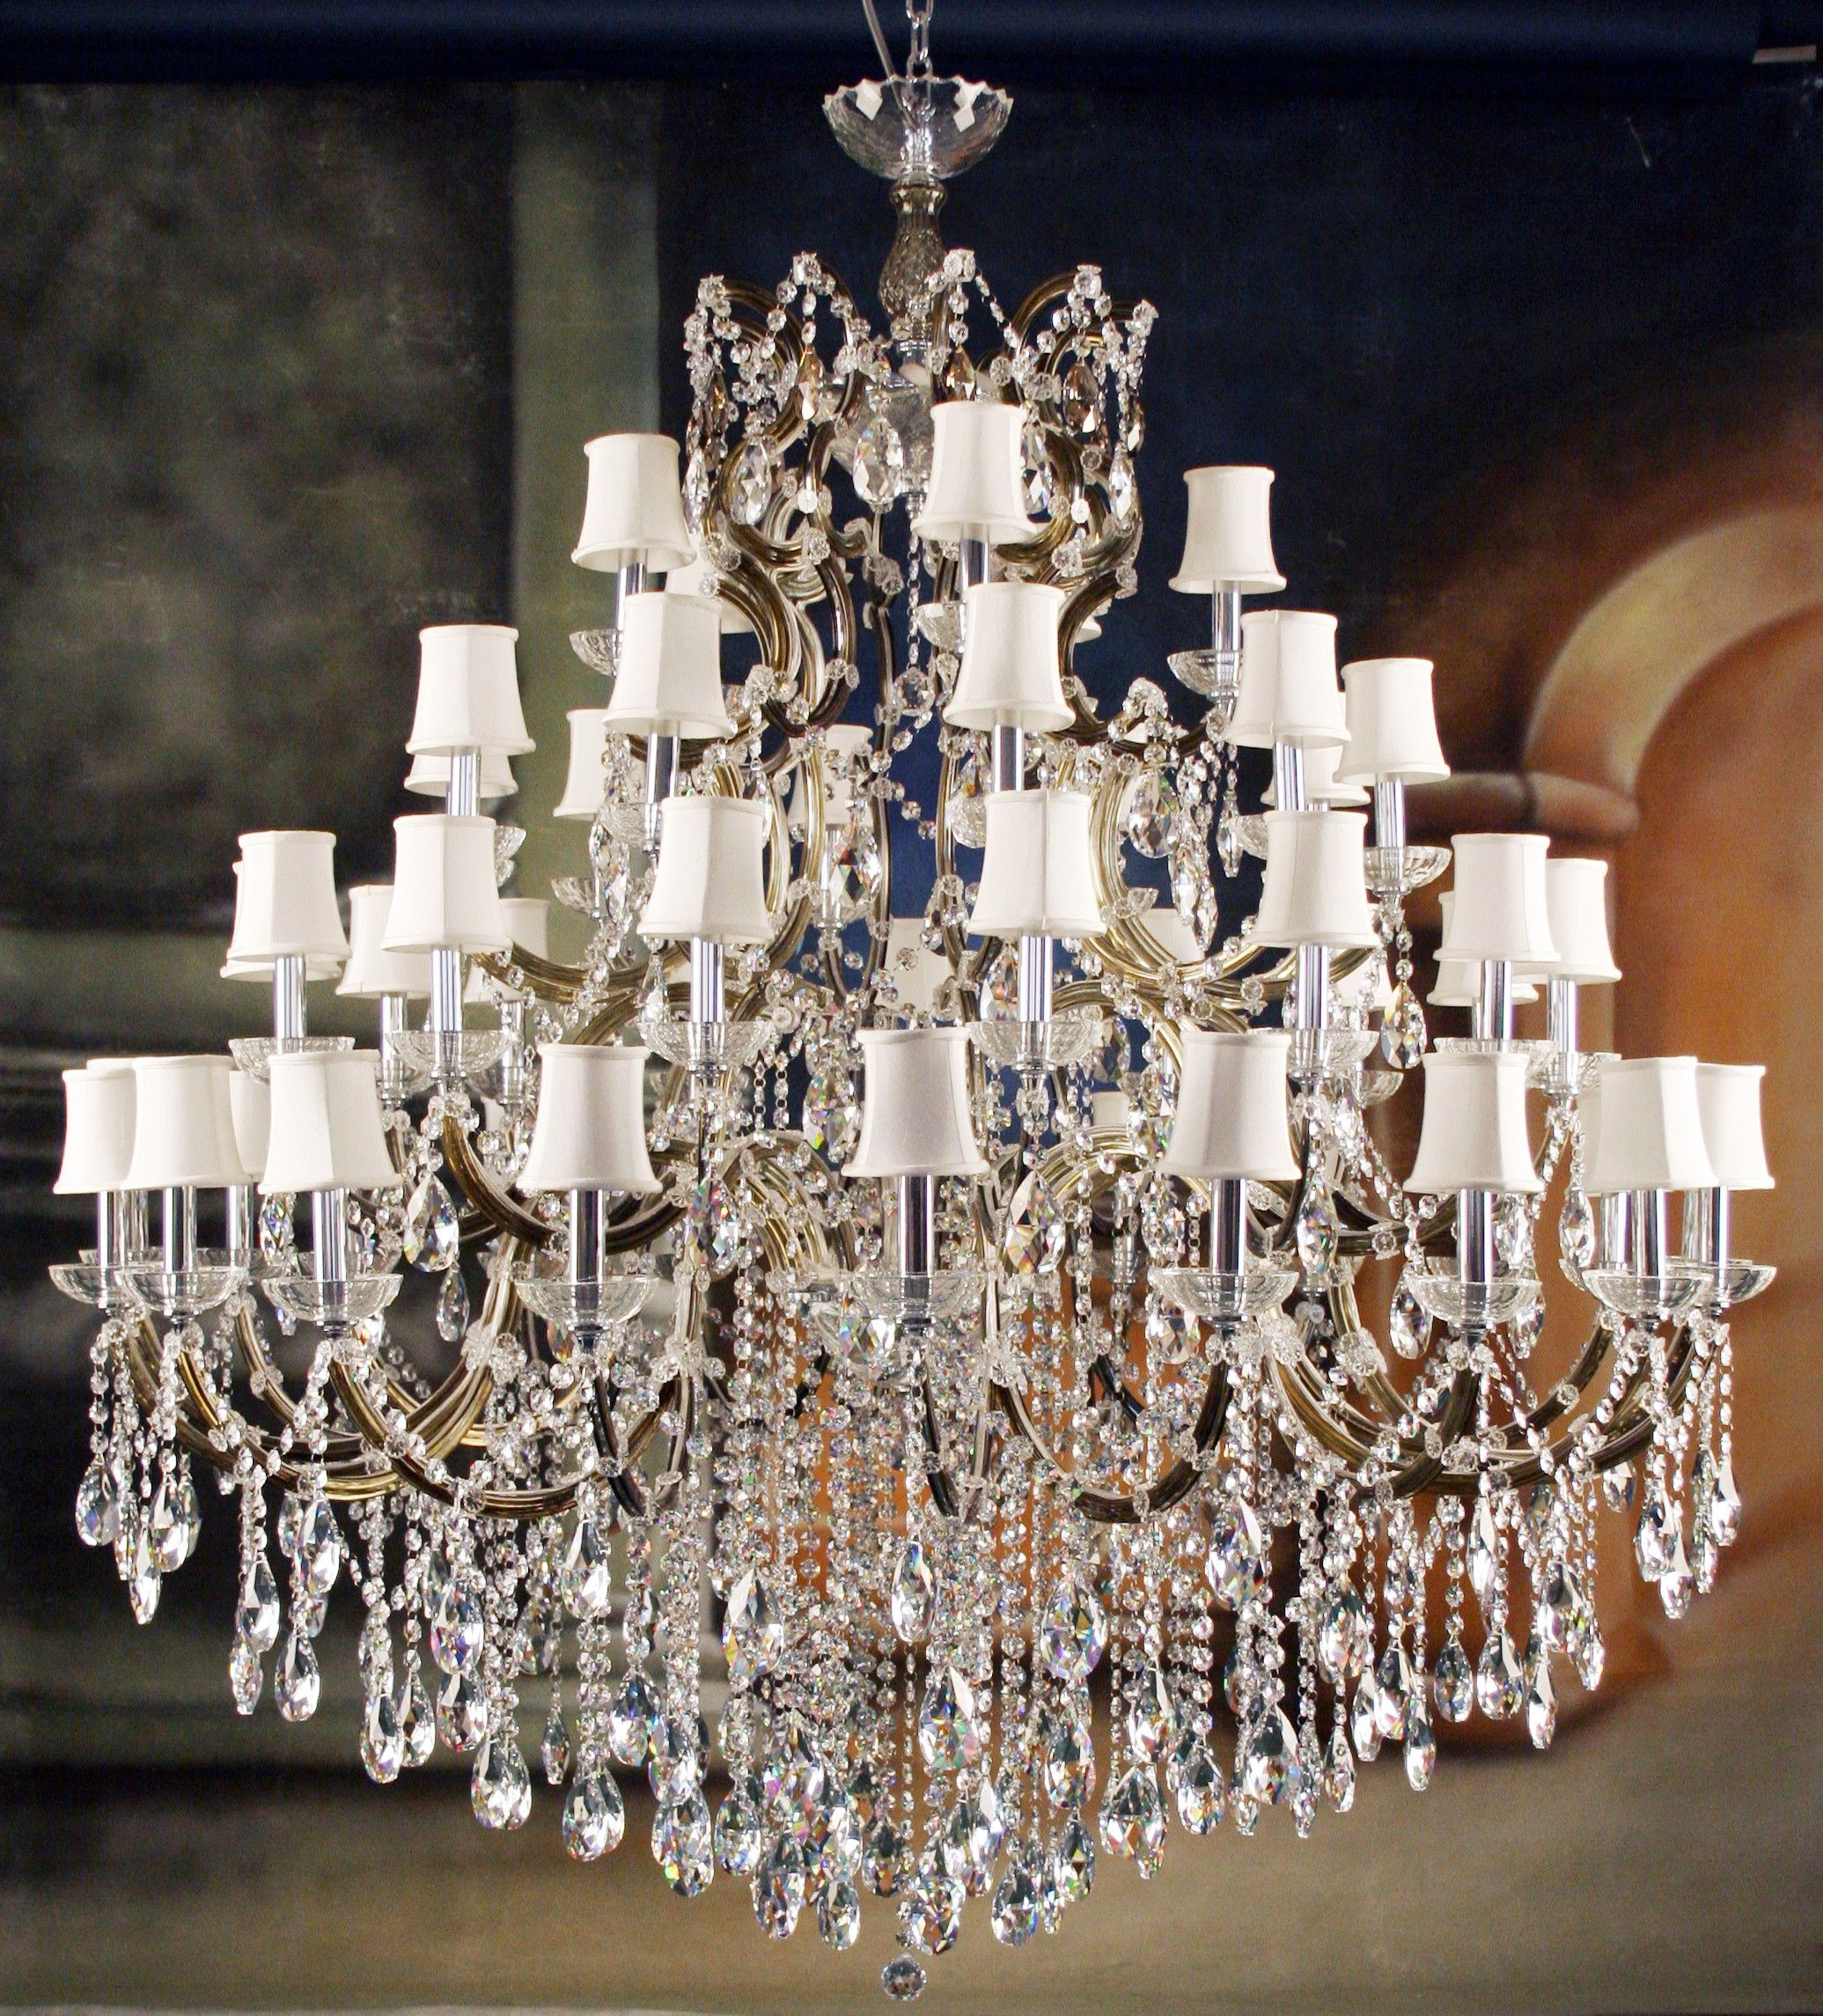 Impressive Unique Crystal Chandeliers Designer Lighting Unique Crystal Glass Crystal Chandelier With & Impressive Unique Crystal Chandeliers Designer Lighting Unique ... azcodes.com